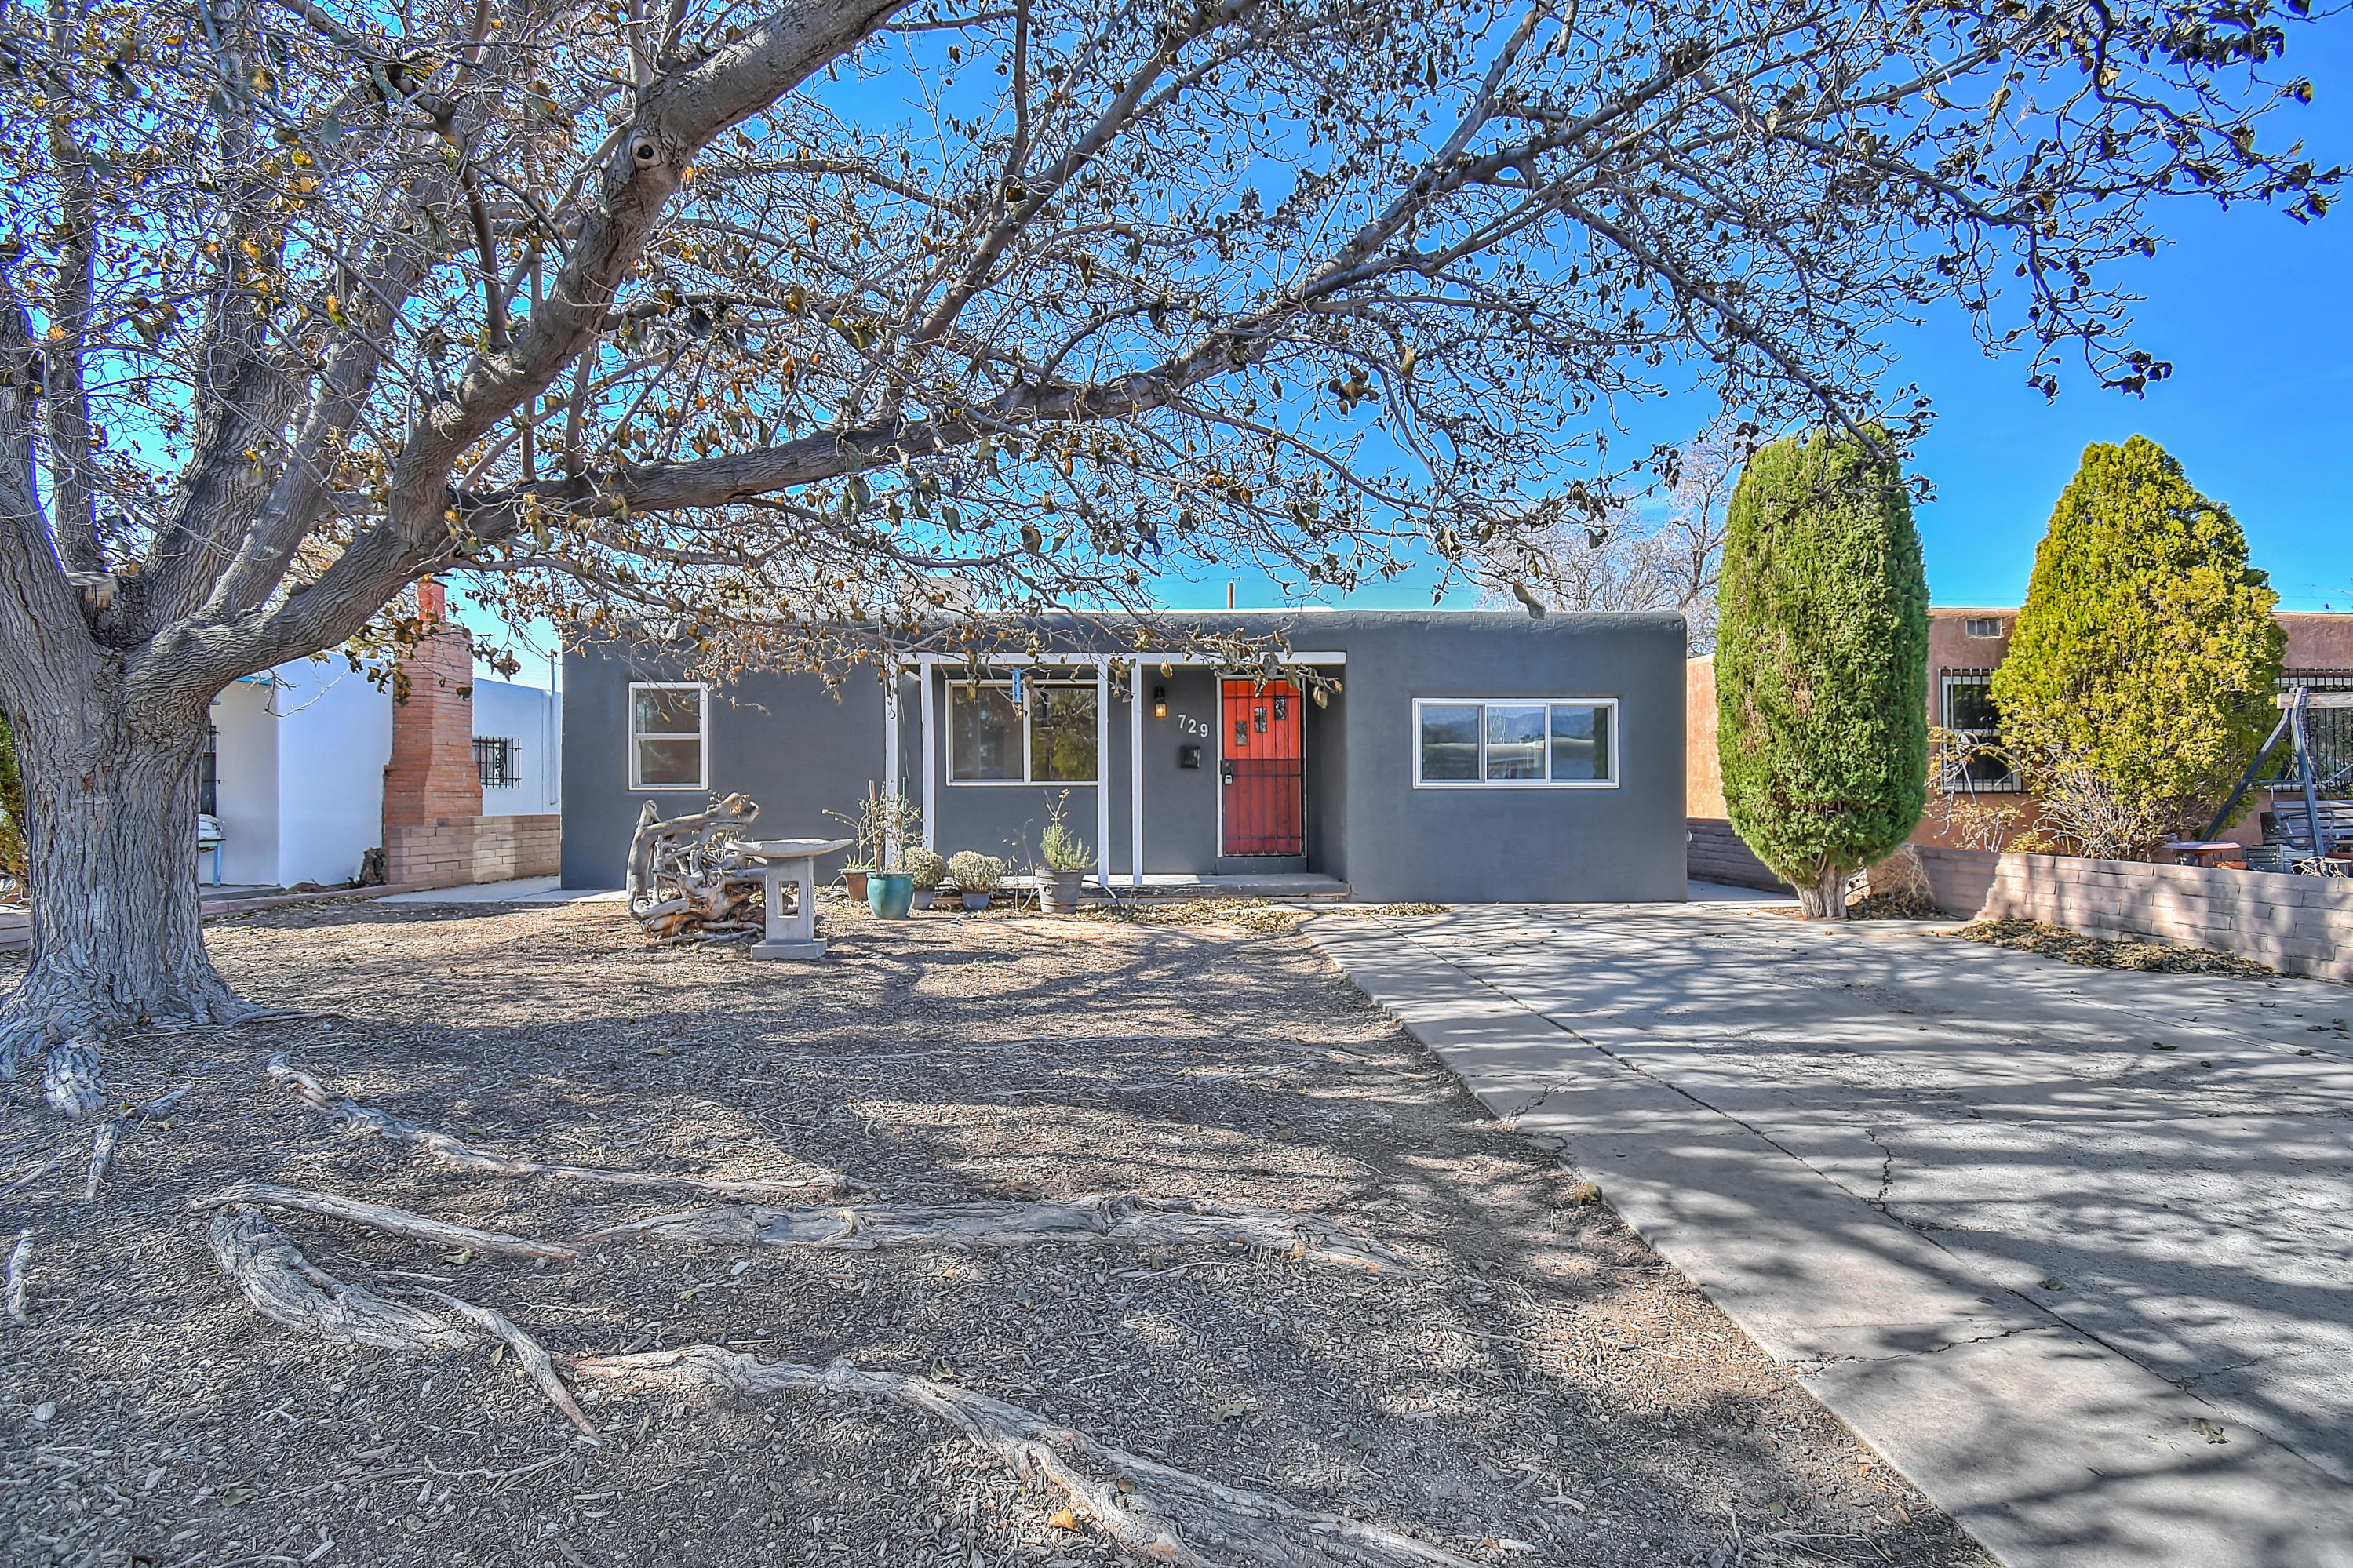 Welcome to this wonderful home just minutes to Nob Hill & UNM.  Beautiful wood flooring was just refinished and looks amazing.  Great floor plan with a large open kitchen, and the converted garage can be used as a 3rd bedroom or you could convert it back to a garage if you prefer.  Nice size dining space with newer tile, and a spacious laundry area as well.  Large backyard with a super cool workshop space, a perfect man-cave.  Newer TPO roof, windows and stucco in the last few years.  Come see this move in ready home today.